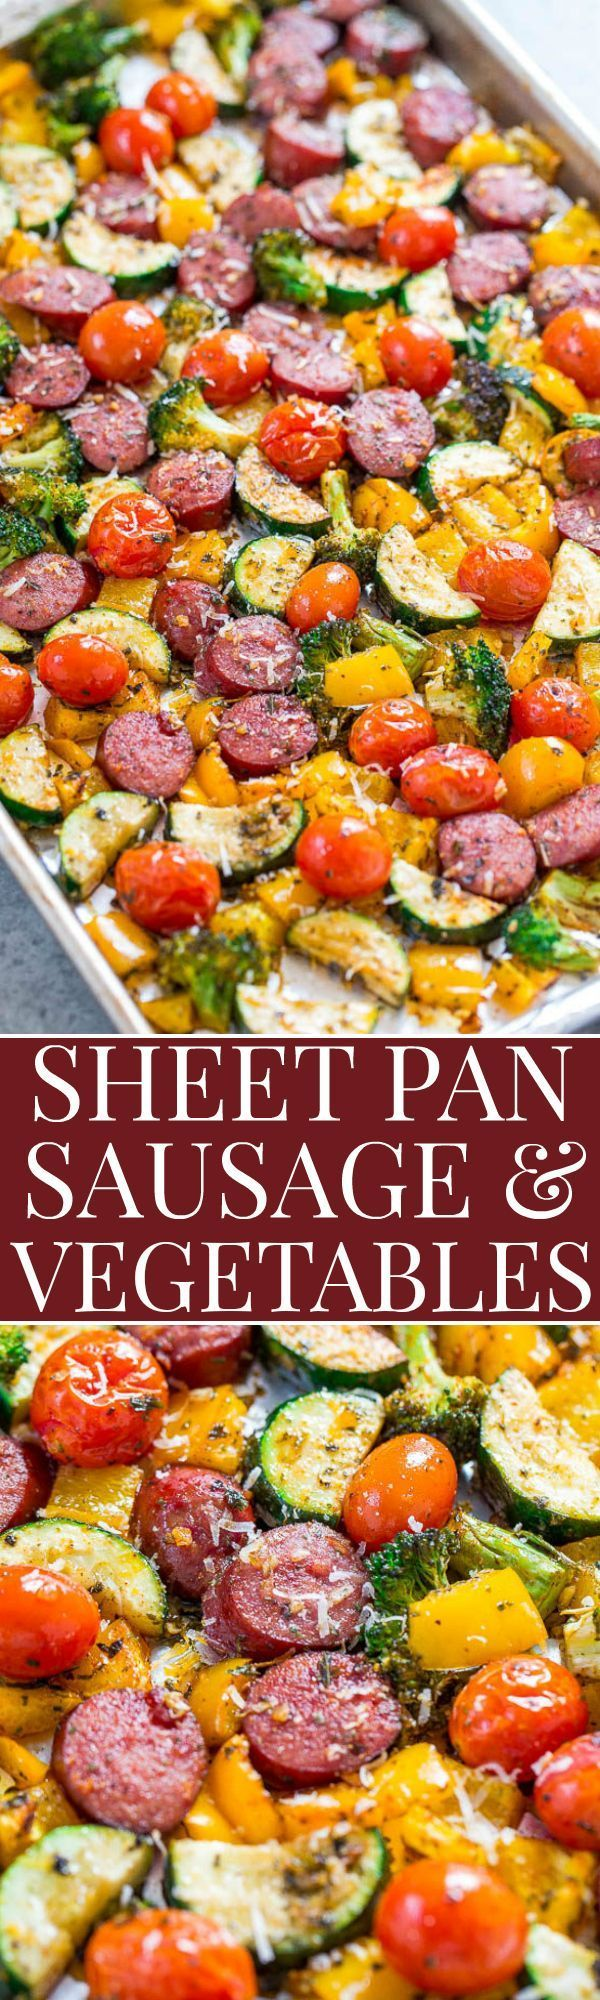 #rotationsheet #vegetables #yoursheet #parmesan #rotation #sausage #veggies #regular #dusting #cheese #flavor #finish #recipe #dustin #thatsPan Sausage and Vegetables Sheet Pan Sausage and Vegetables - Fast, EASY, one pan recipe that's full of FLAVOR!! Juicy sausage, lots of veggies, and a dusting of Parmesan cheese to finish it off! Put it into your regular rotation!!Sheet Pan Sausage and Vegetables - Fast, EASY, one pan recipe that's full of FLAVOR!! Juicy sausage, lots of veggies, and ... #sausagedinner